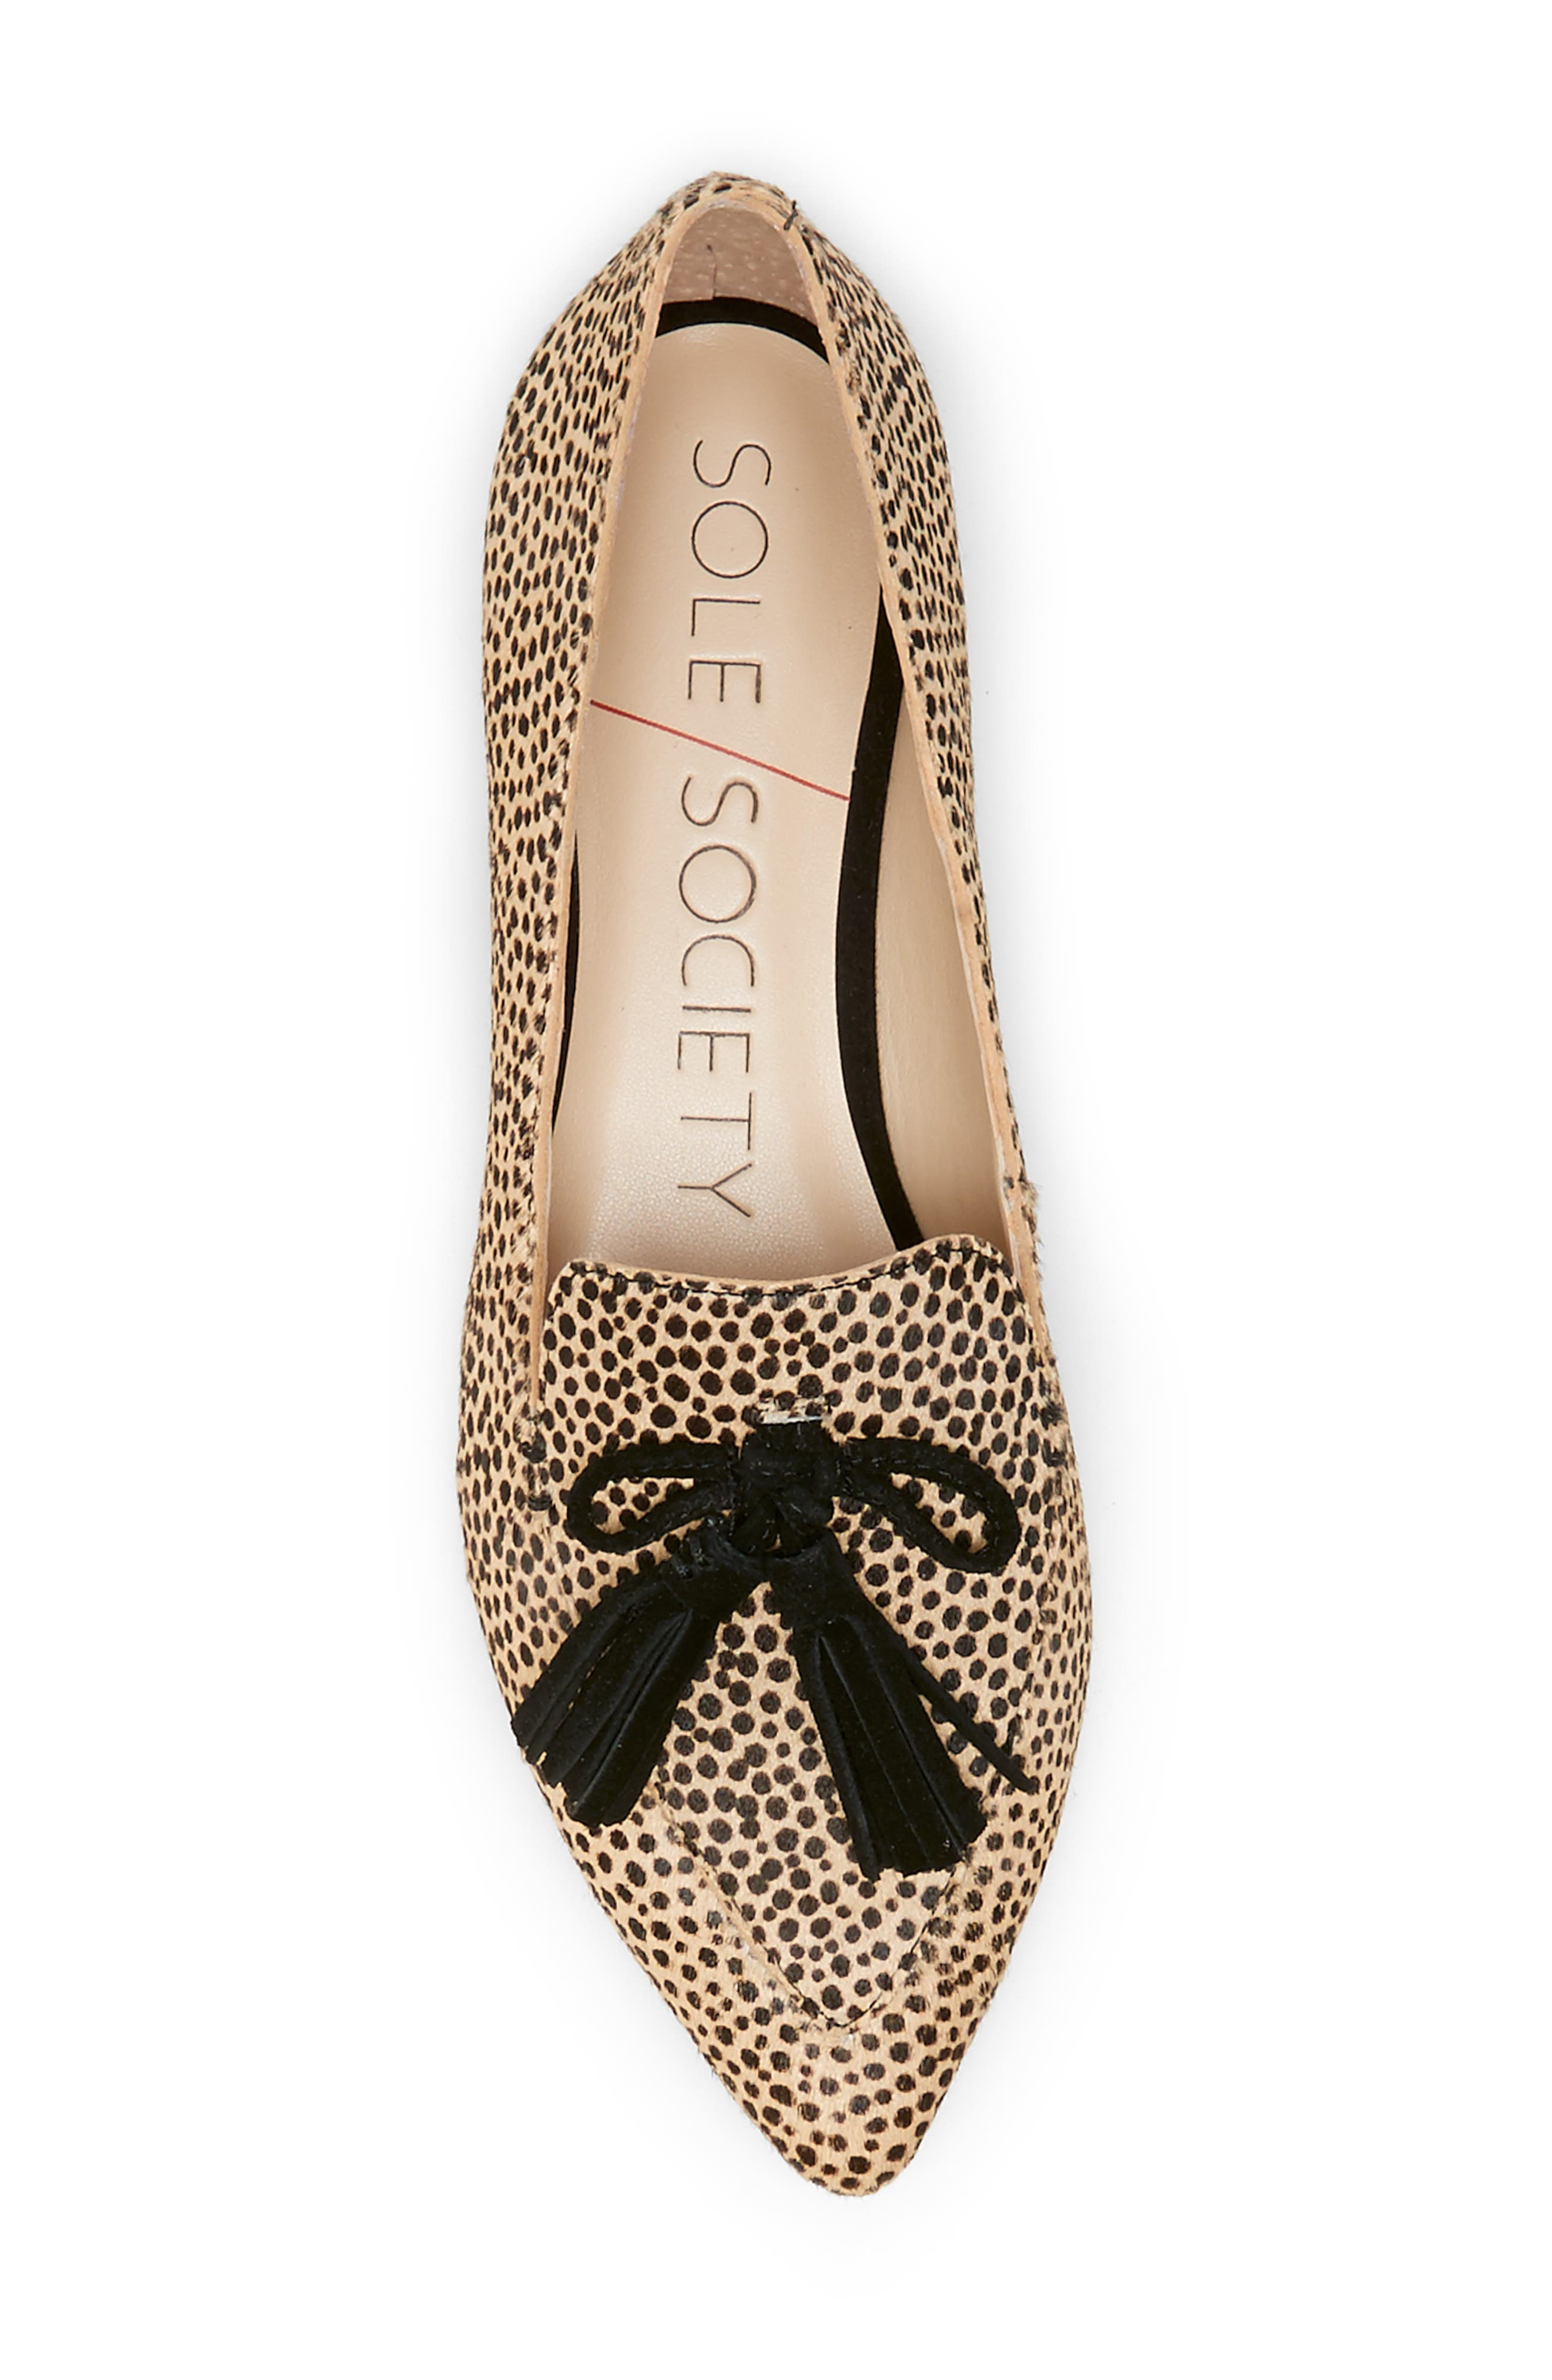 SOLE SOCIETY, Hadlee Loafer, Alternate thumbnail 3, color, DOTTED CALF HAIR